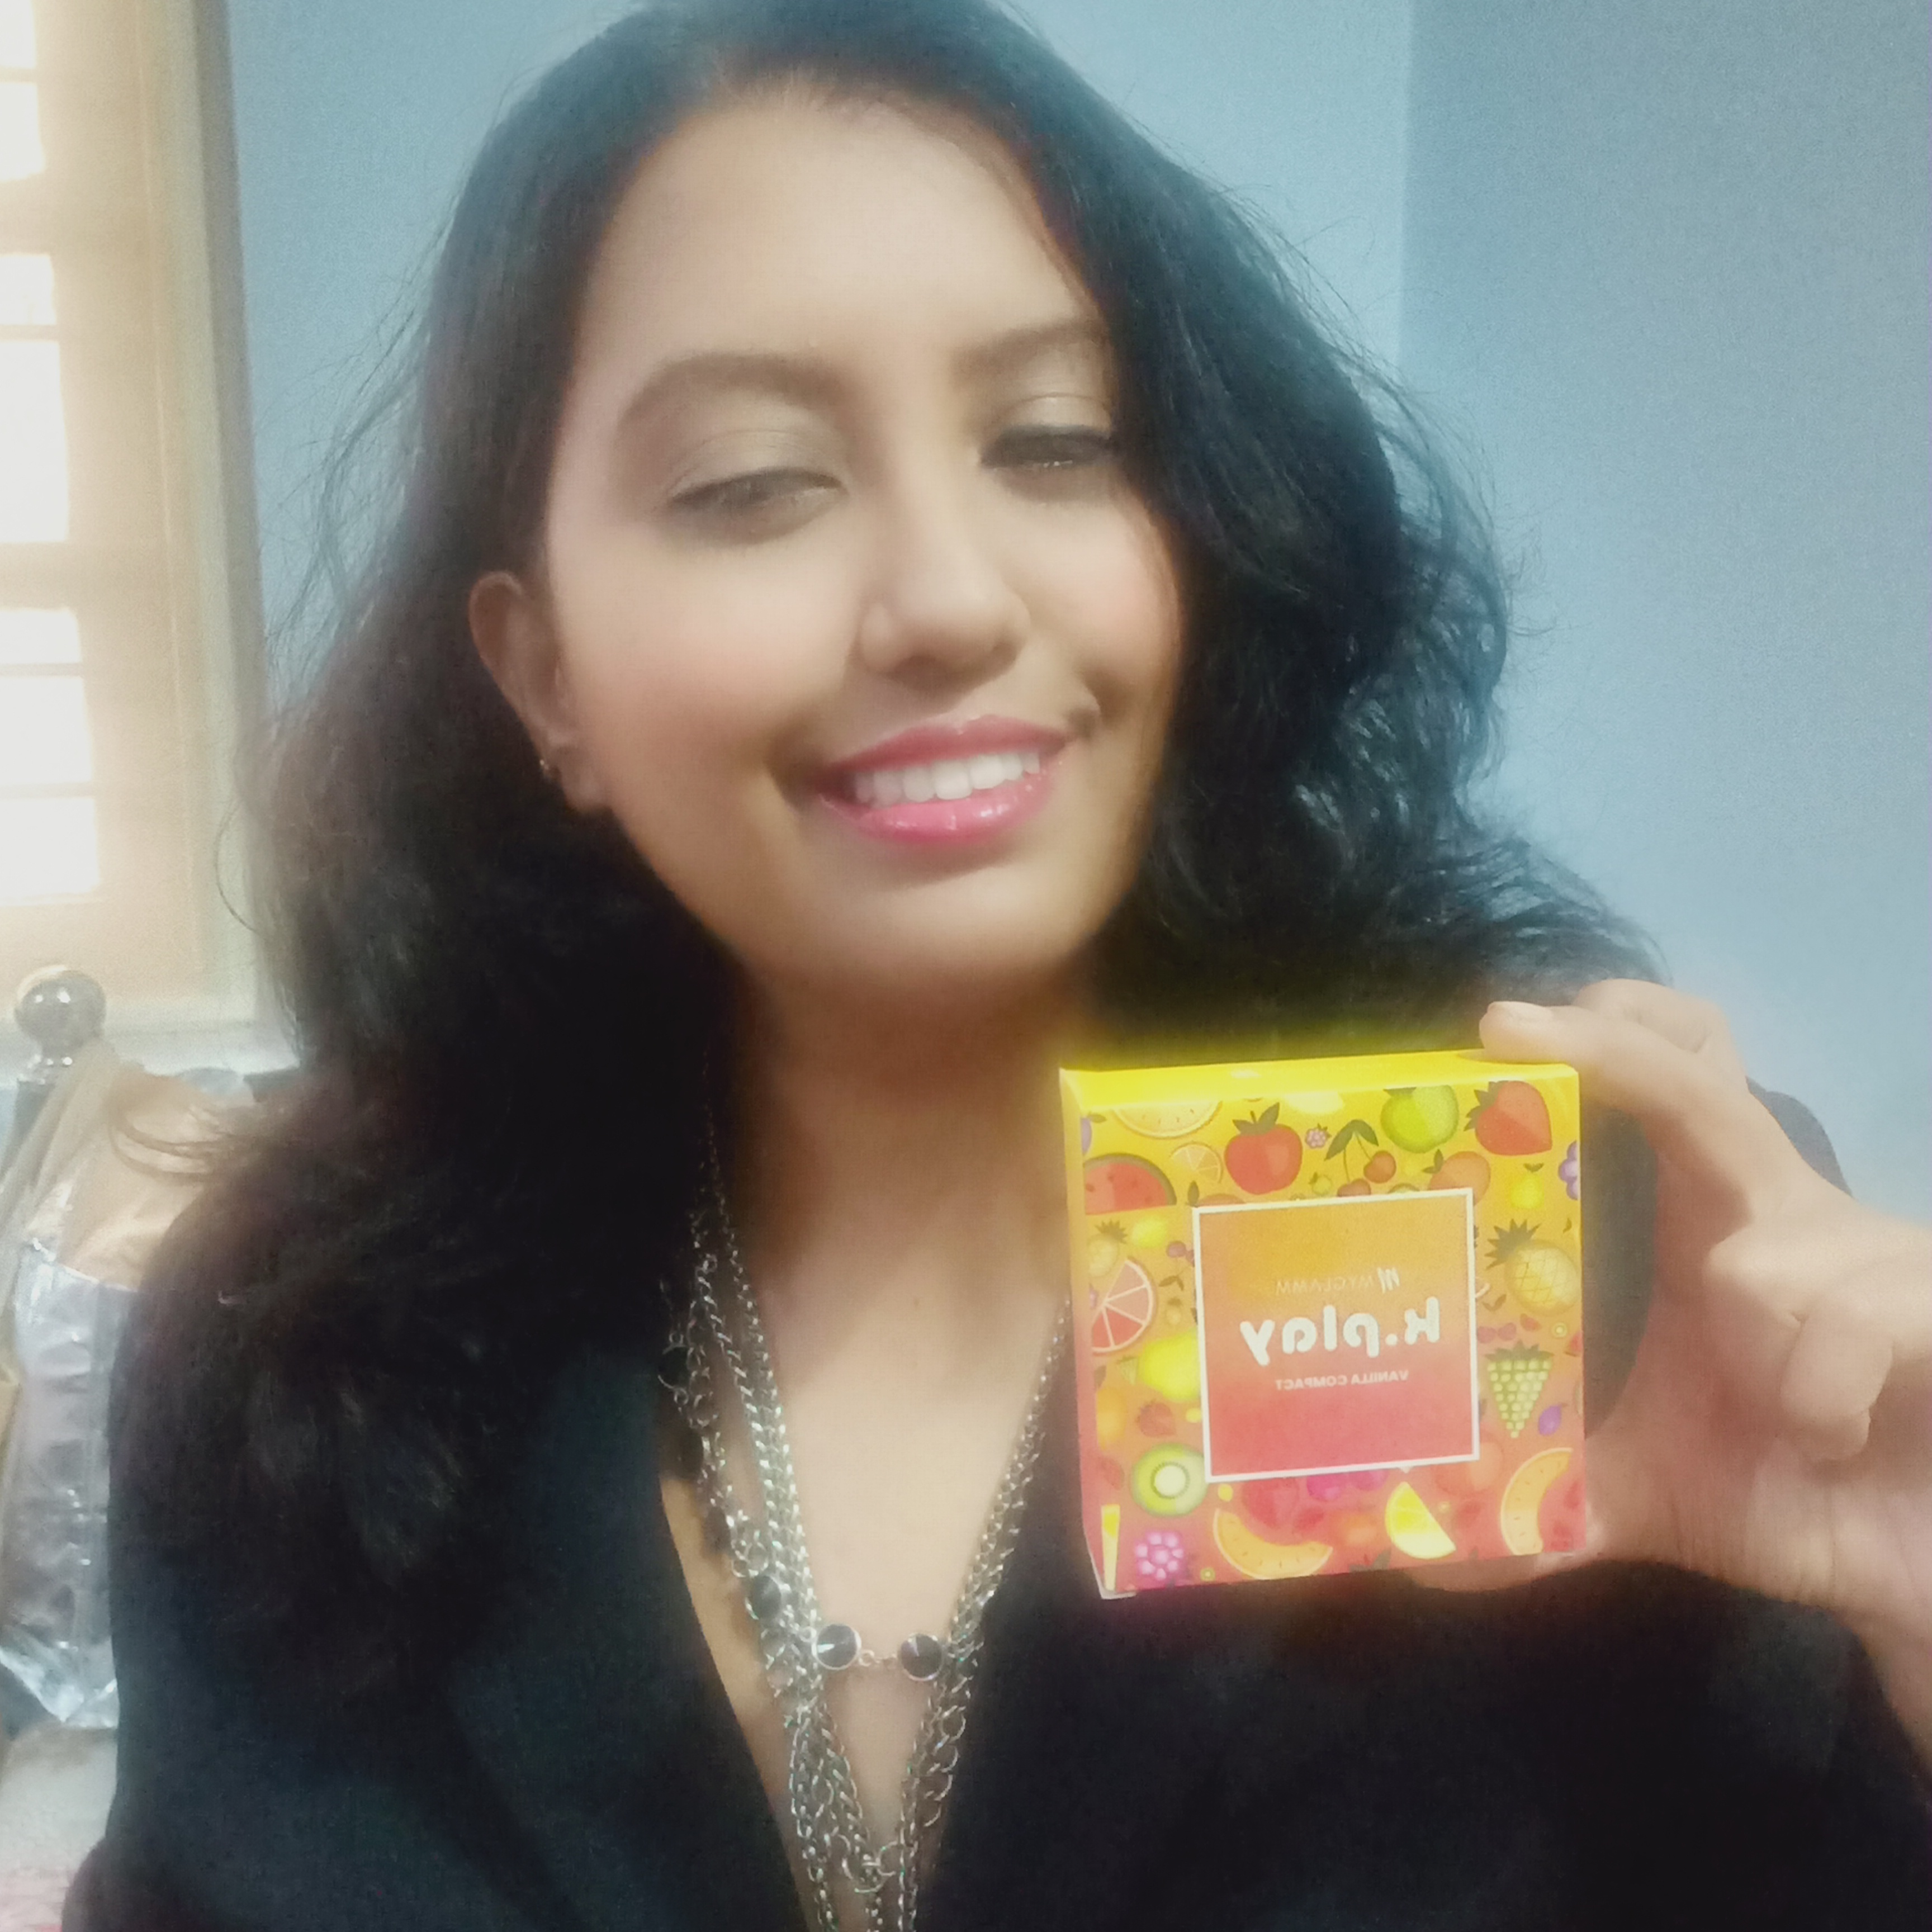 MyGlamm K.PLAY FLAVOURED COMPACT-Soft glam perfect-By priyanka_bhosle-1